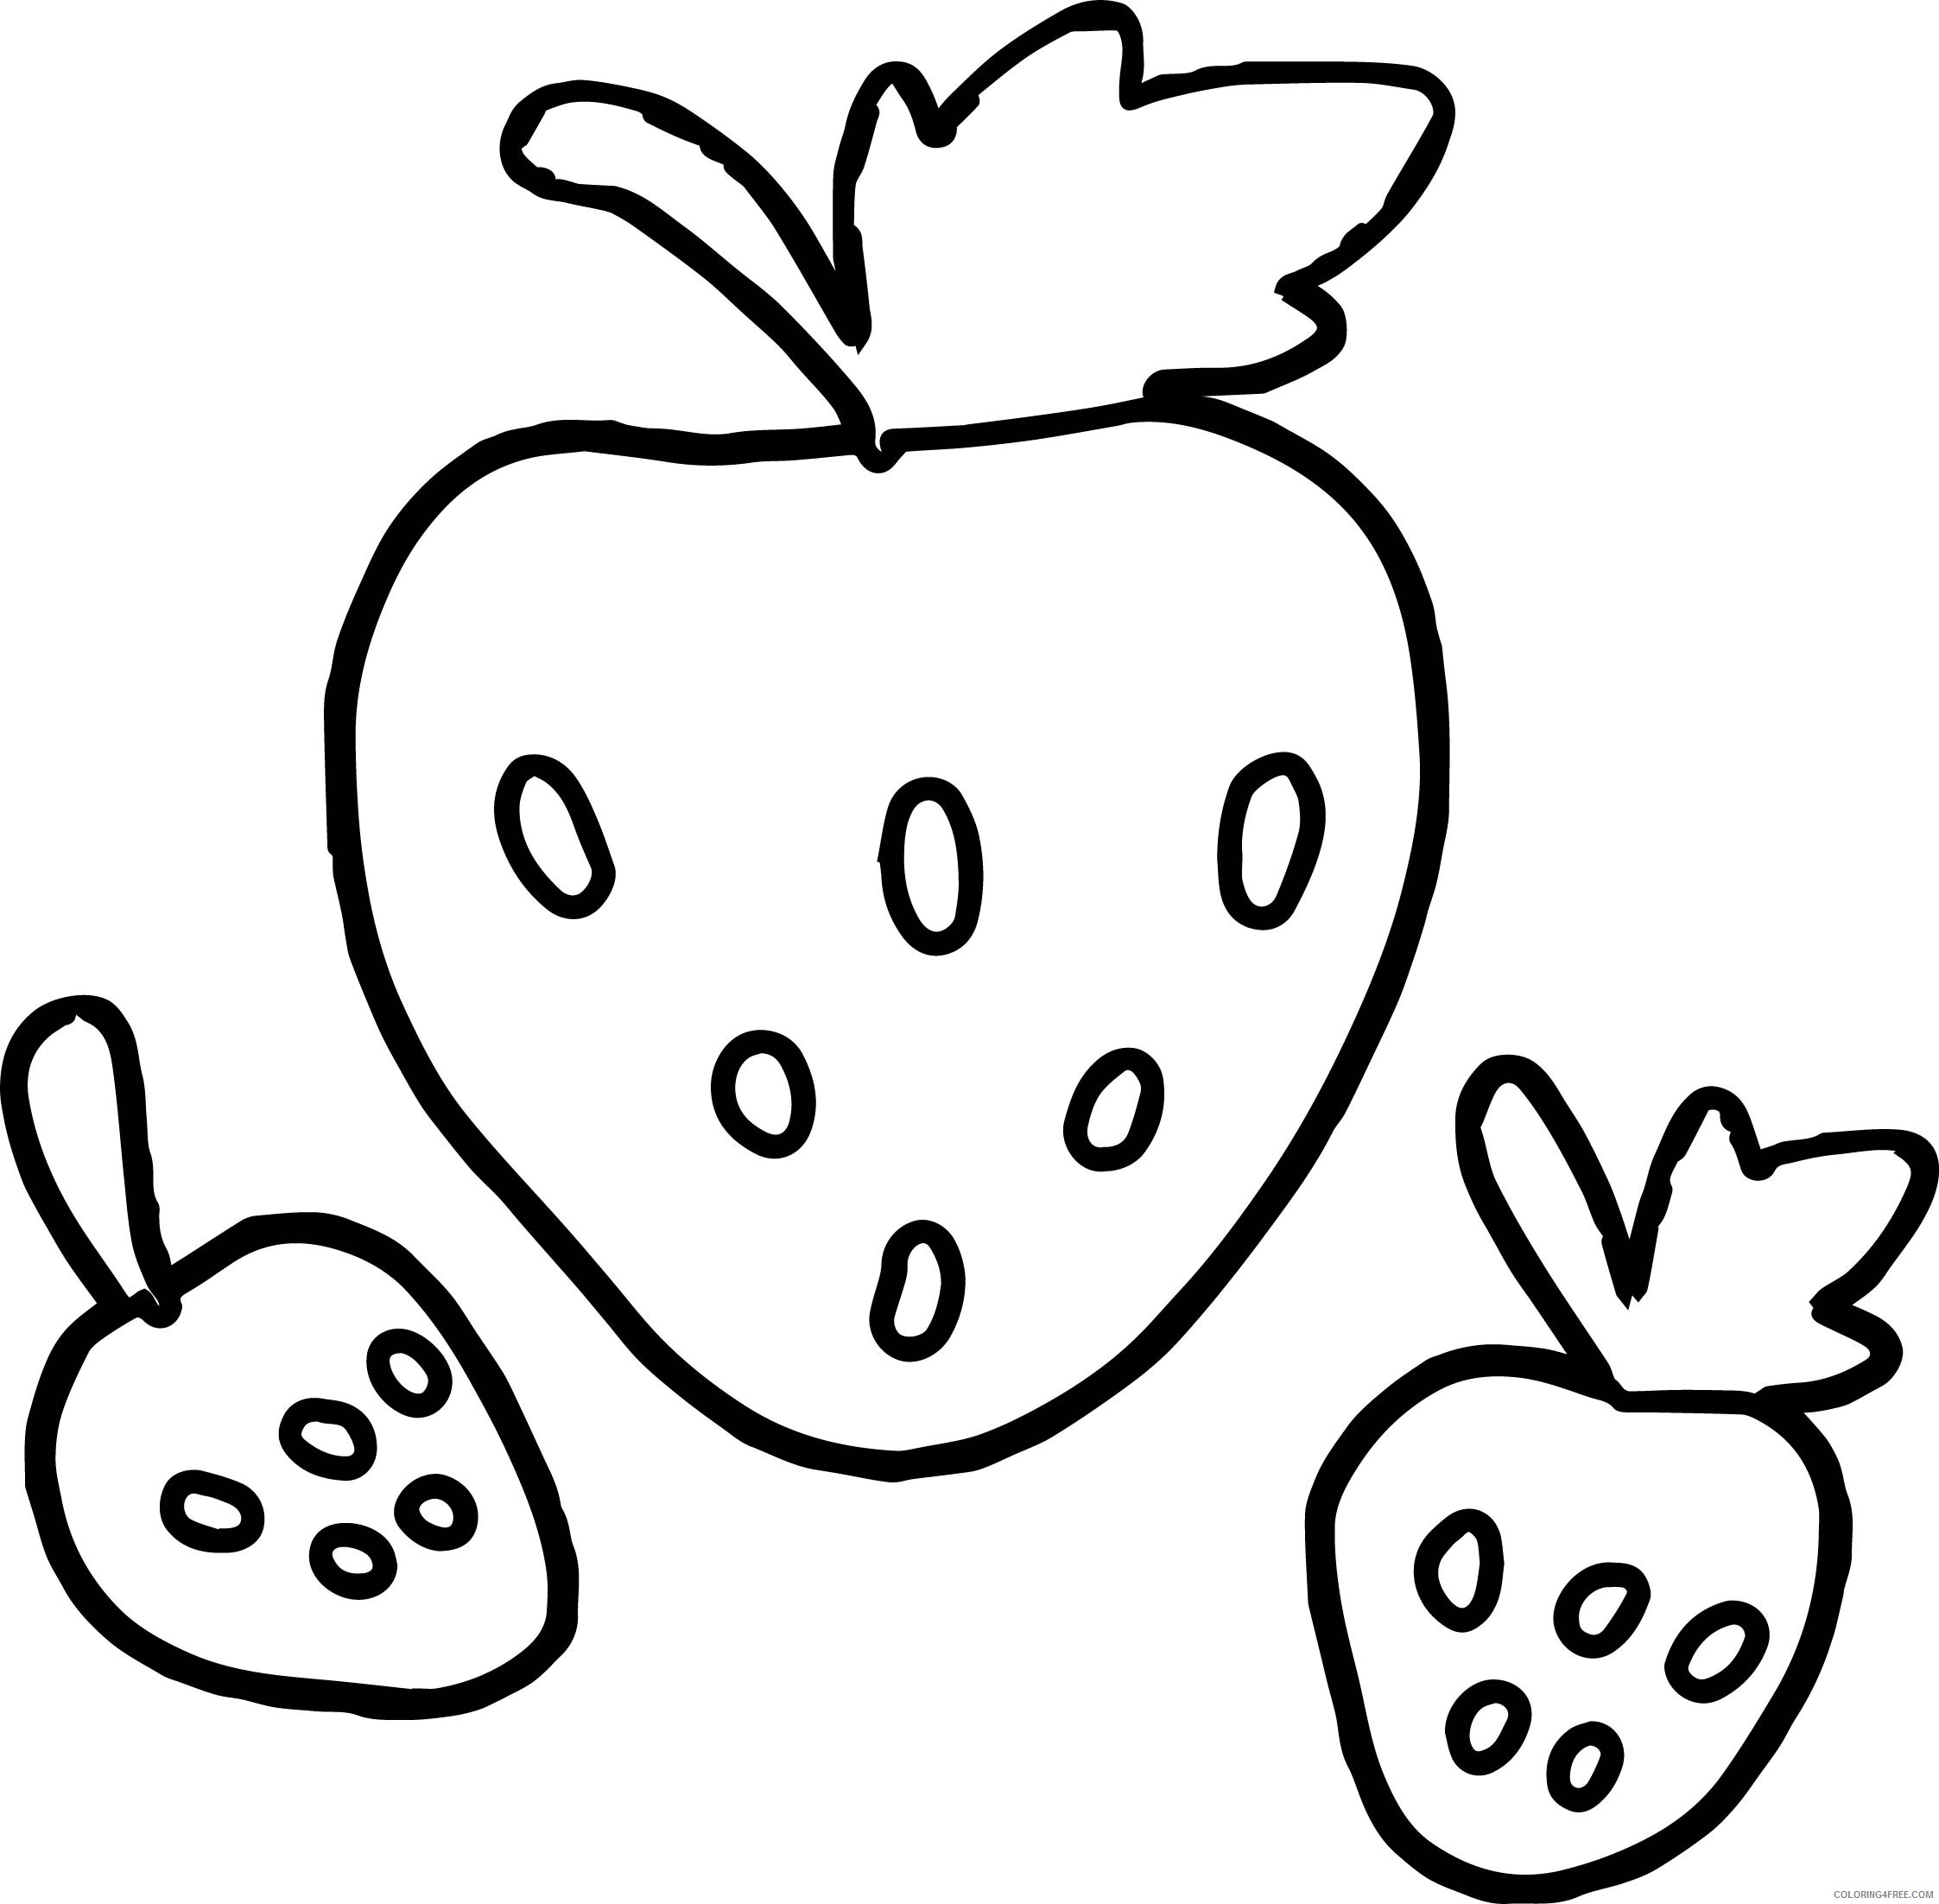 Strawberry Coloring Pages For Preschool Coloring4free Coloring4free Com